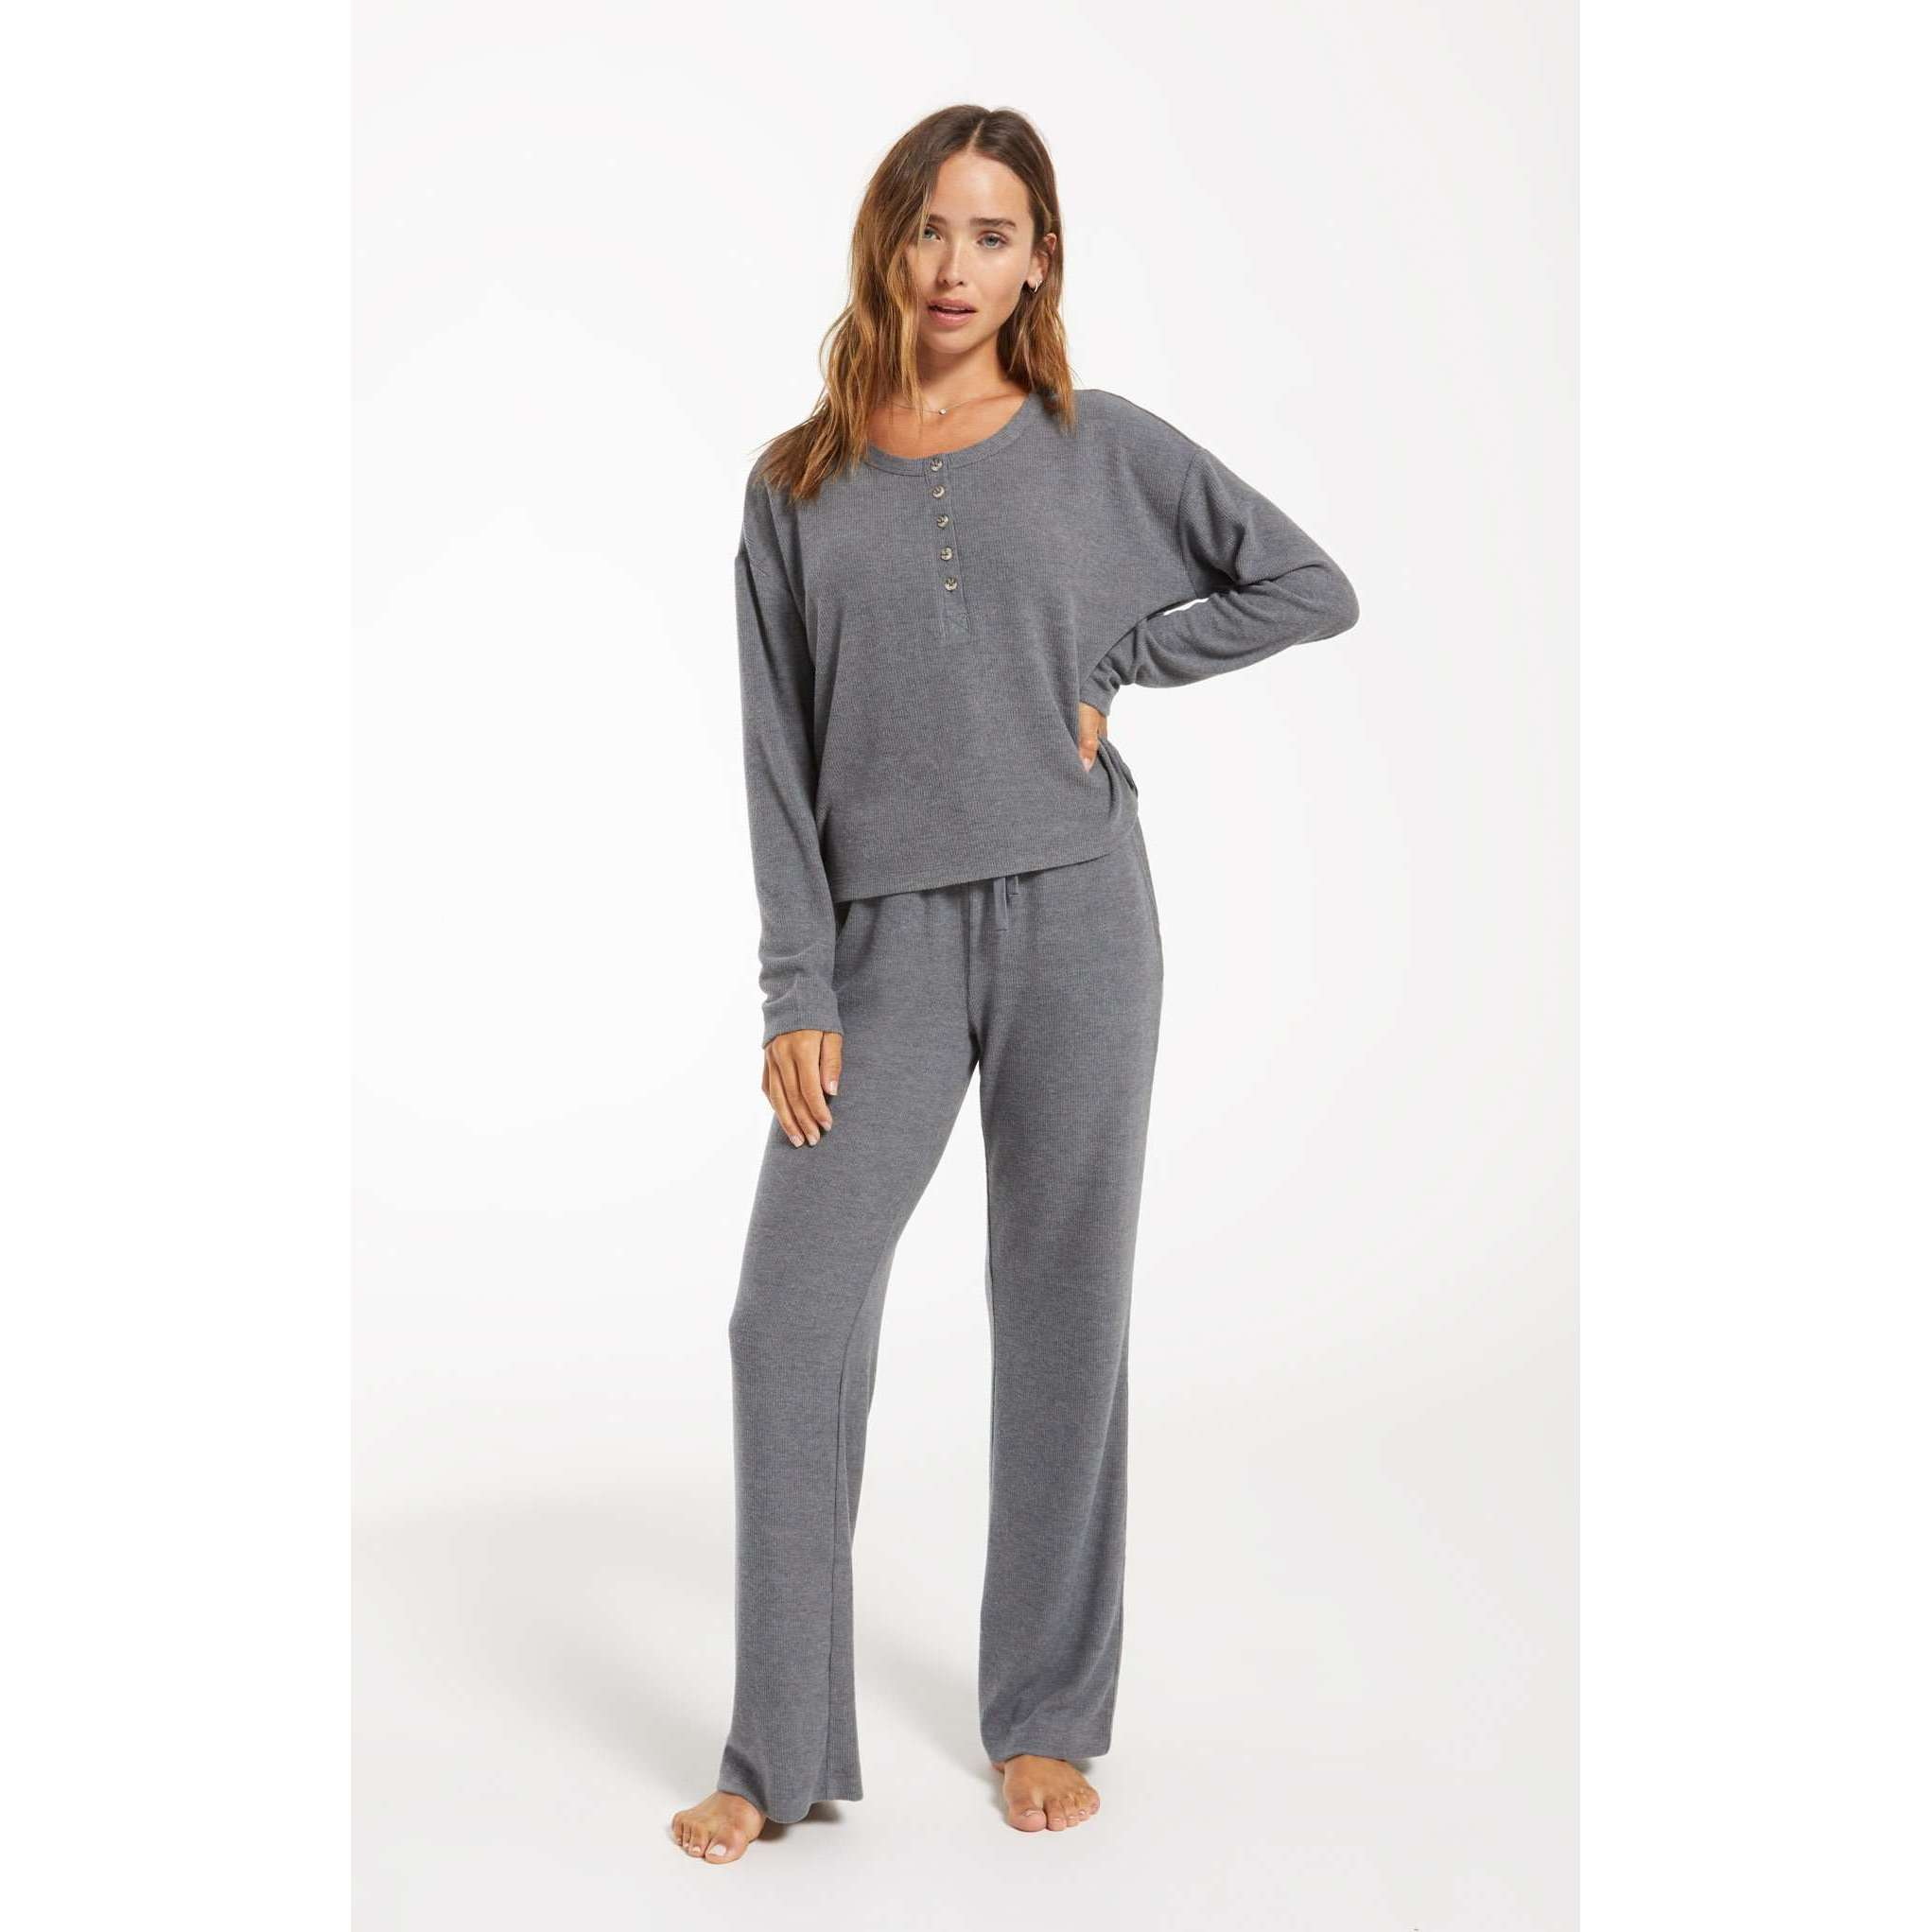 8.28 Boutique:Z-Supply,Z-Supply Go With the Flow Pant,Bottoms